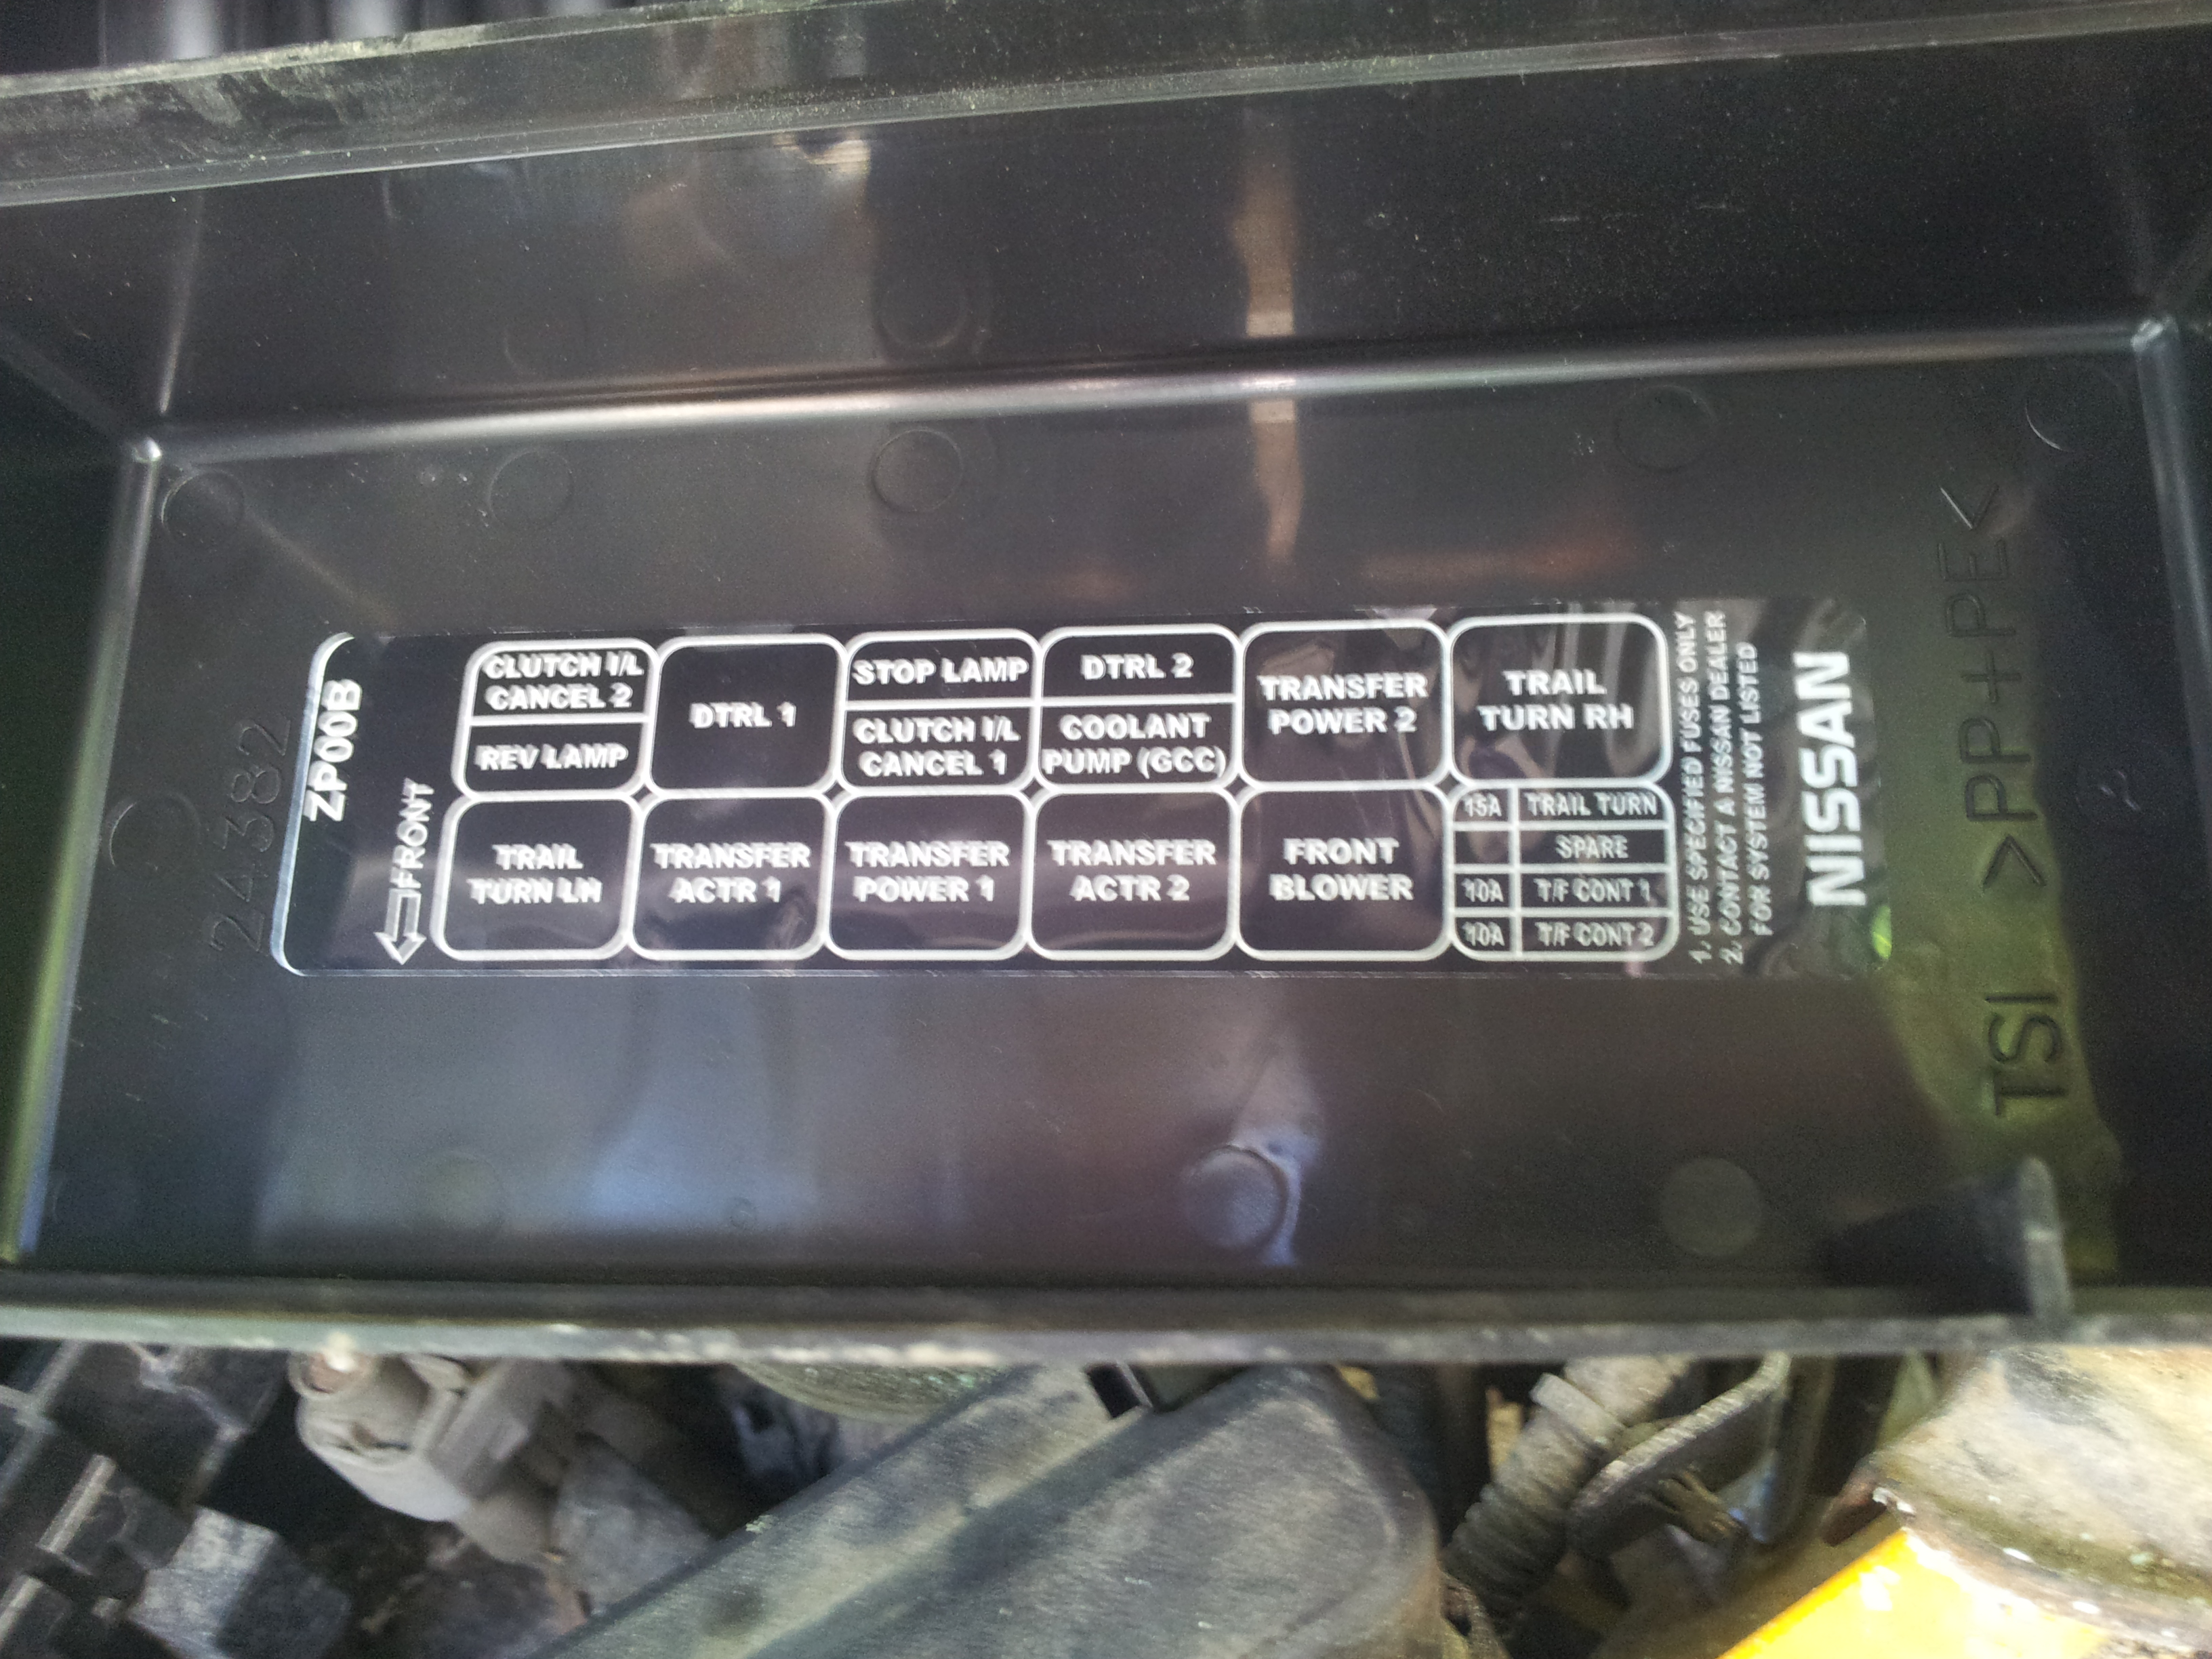 2005 Nissan Maxima Fuse Box Diagram Wiring Library 2000 Headlight 2012 Location